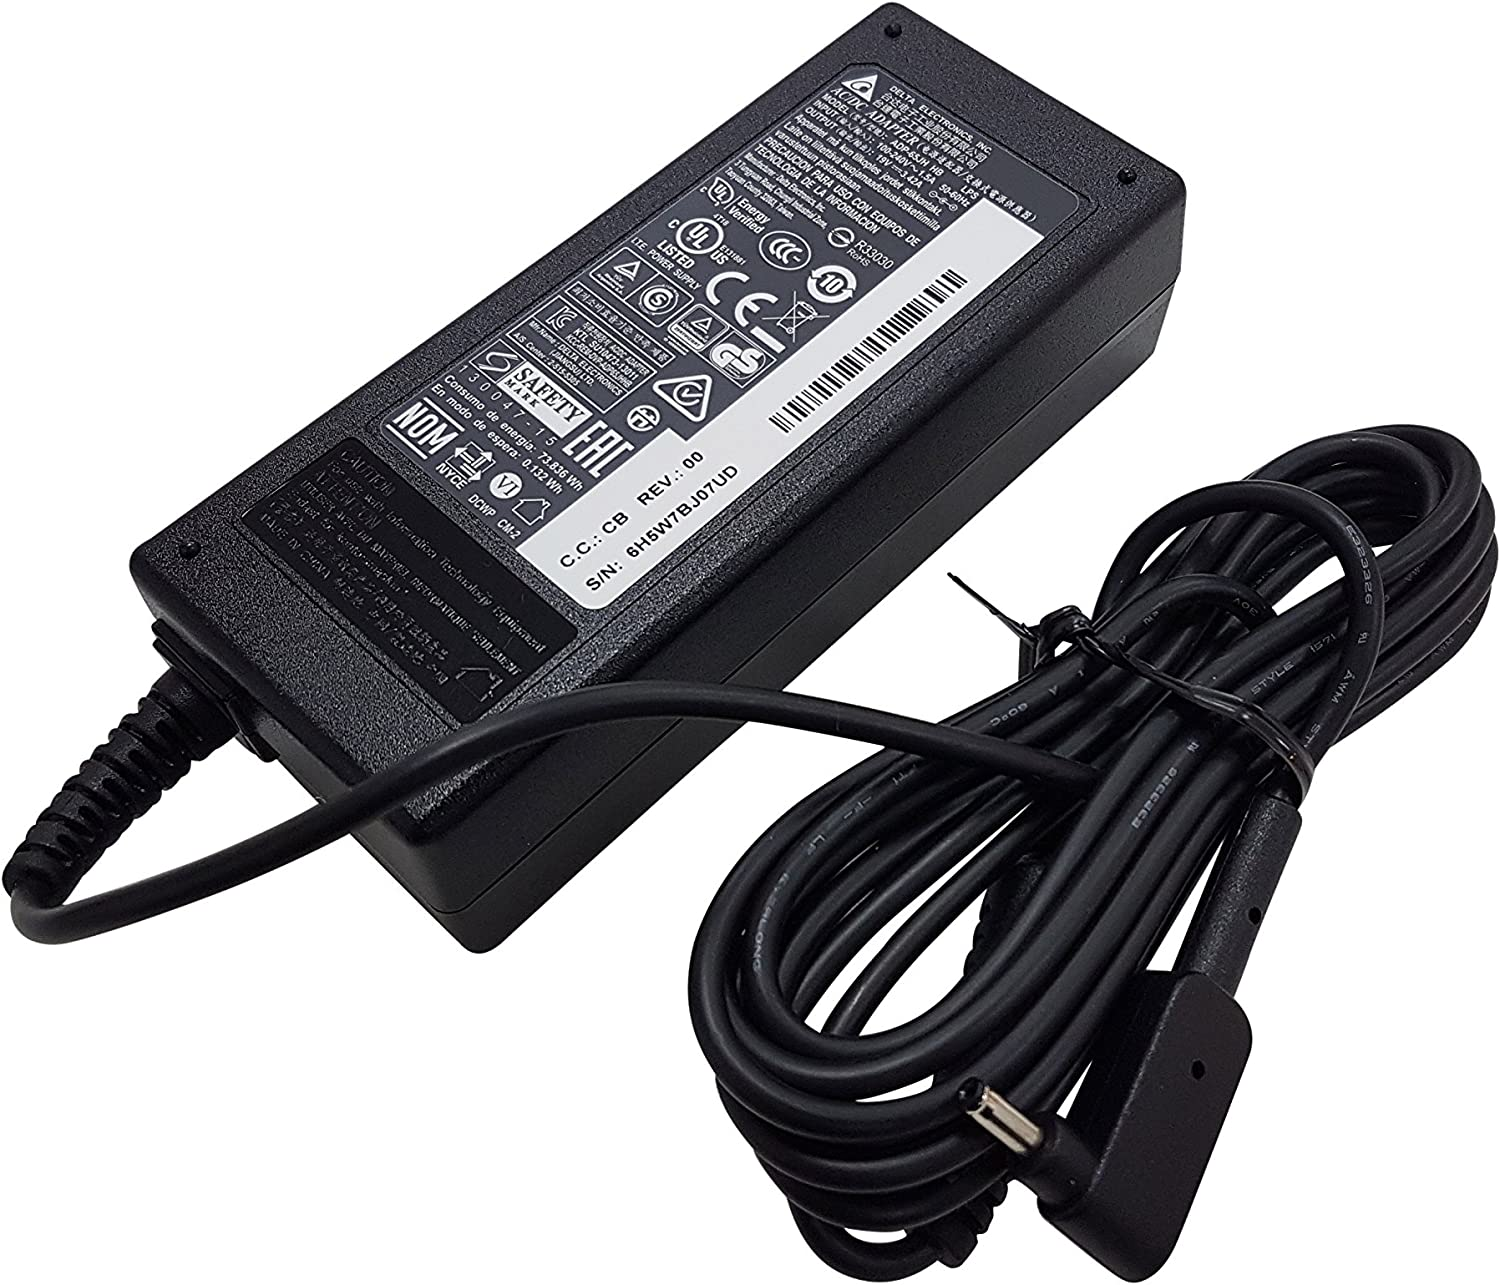 Acer Chromebook CB5 CB5-571 C720 C720P S7-191 S7-391 S7-392 Iconia W700 Laptop Charger AC Adapter Power Supply Cord